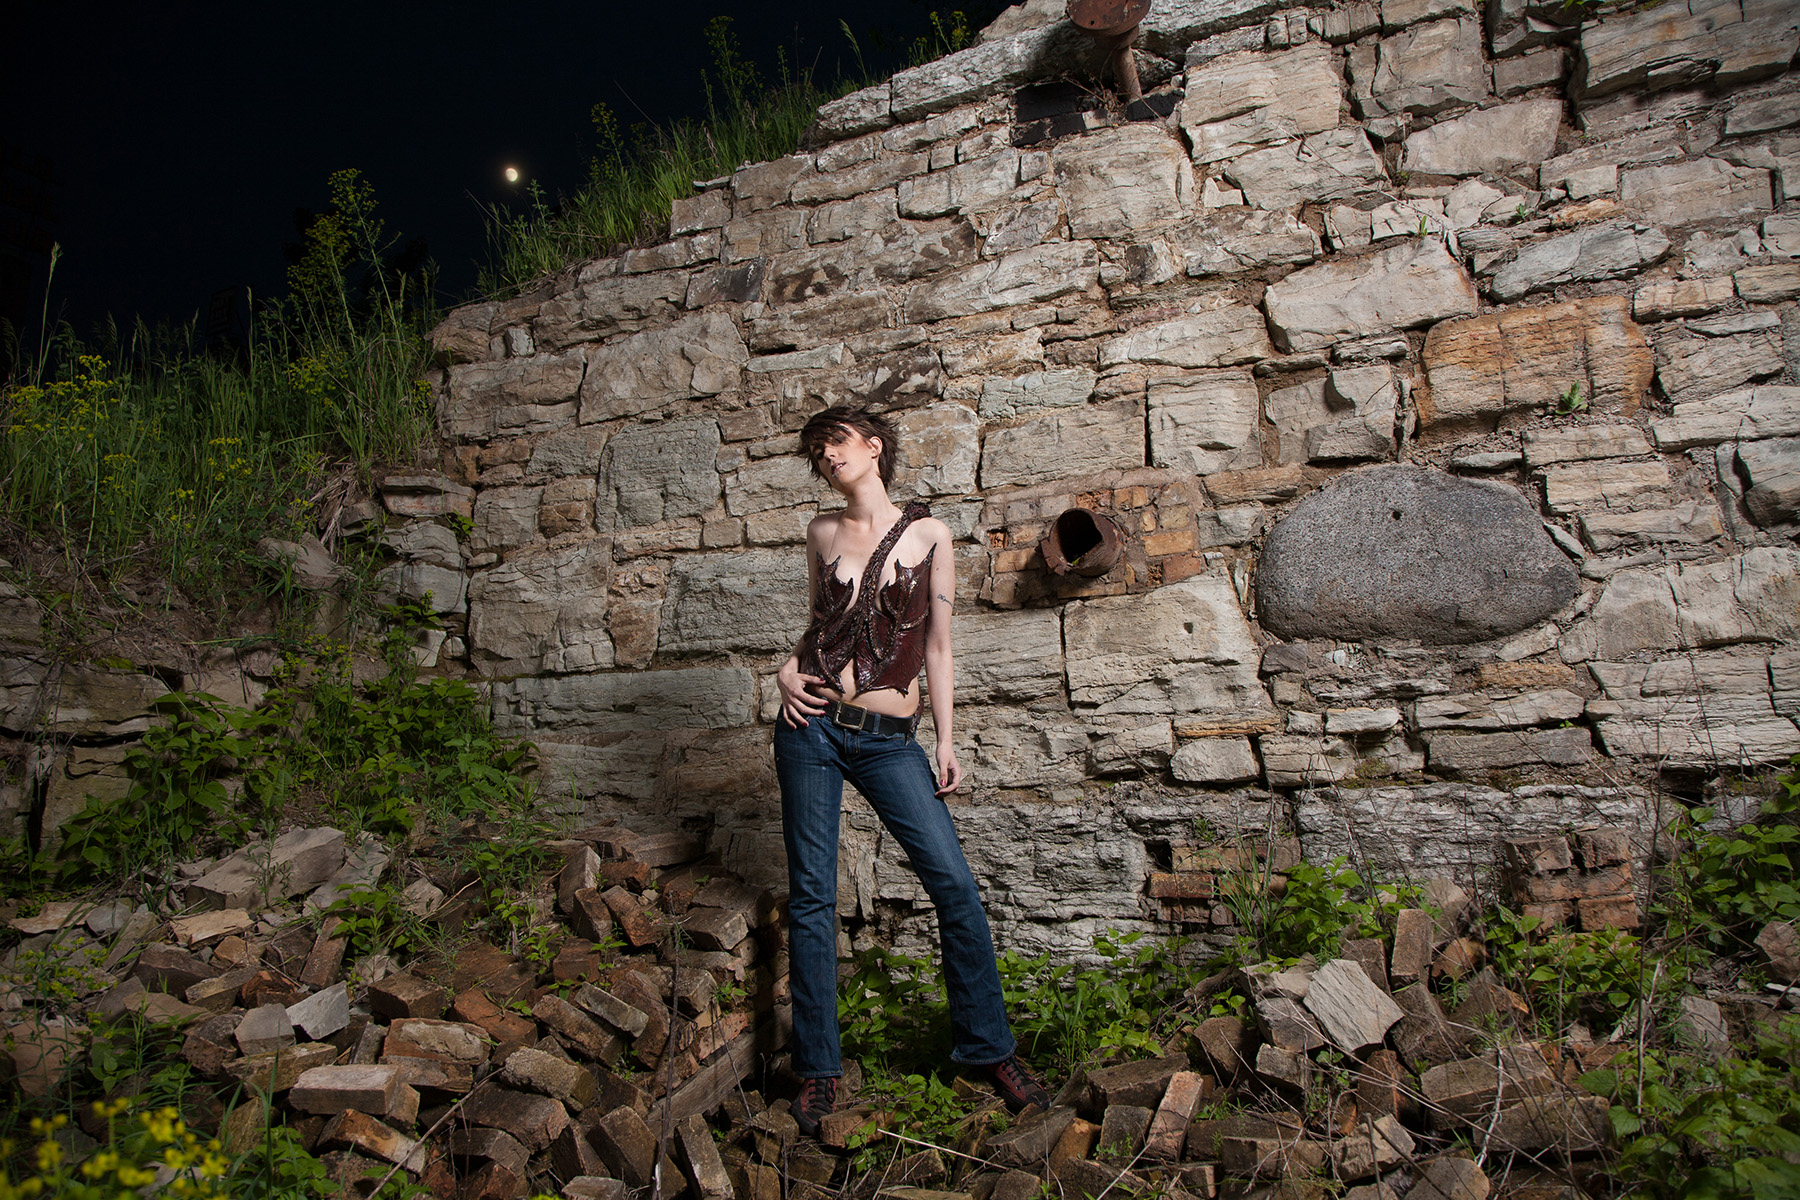 A beautiful young woman with short hair is standing in front of a rock retaining wall, wearing a dark burgundy latex, 3D sculpted dragon top. It wraps around her torso, and looks like Smaug.